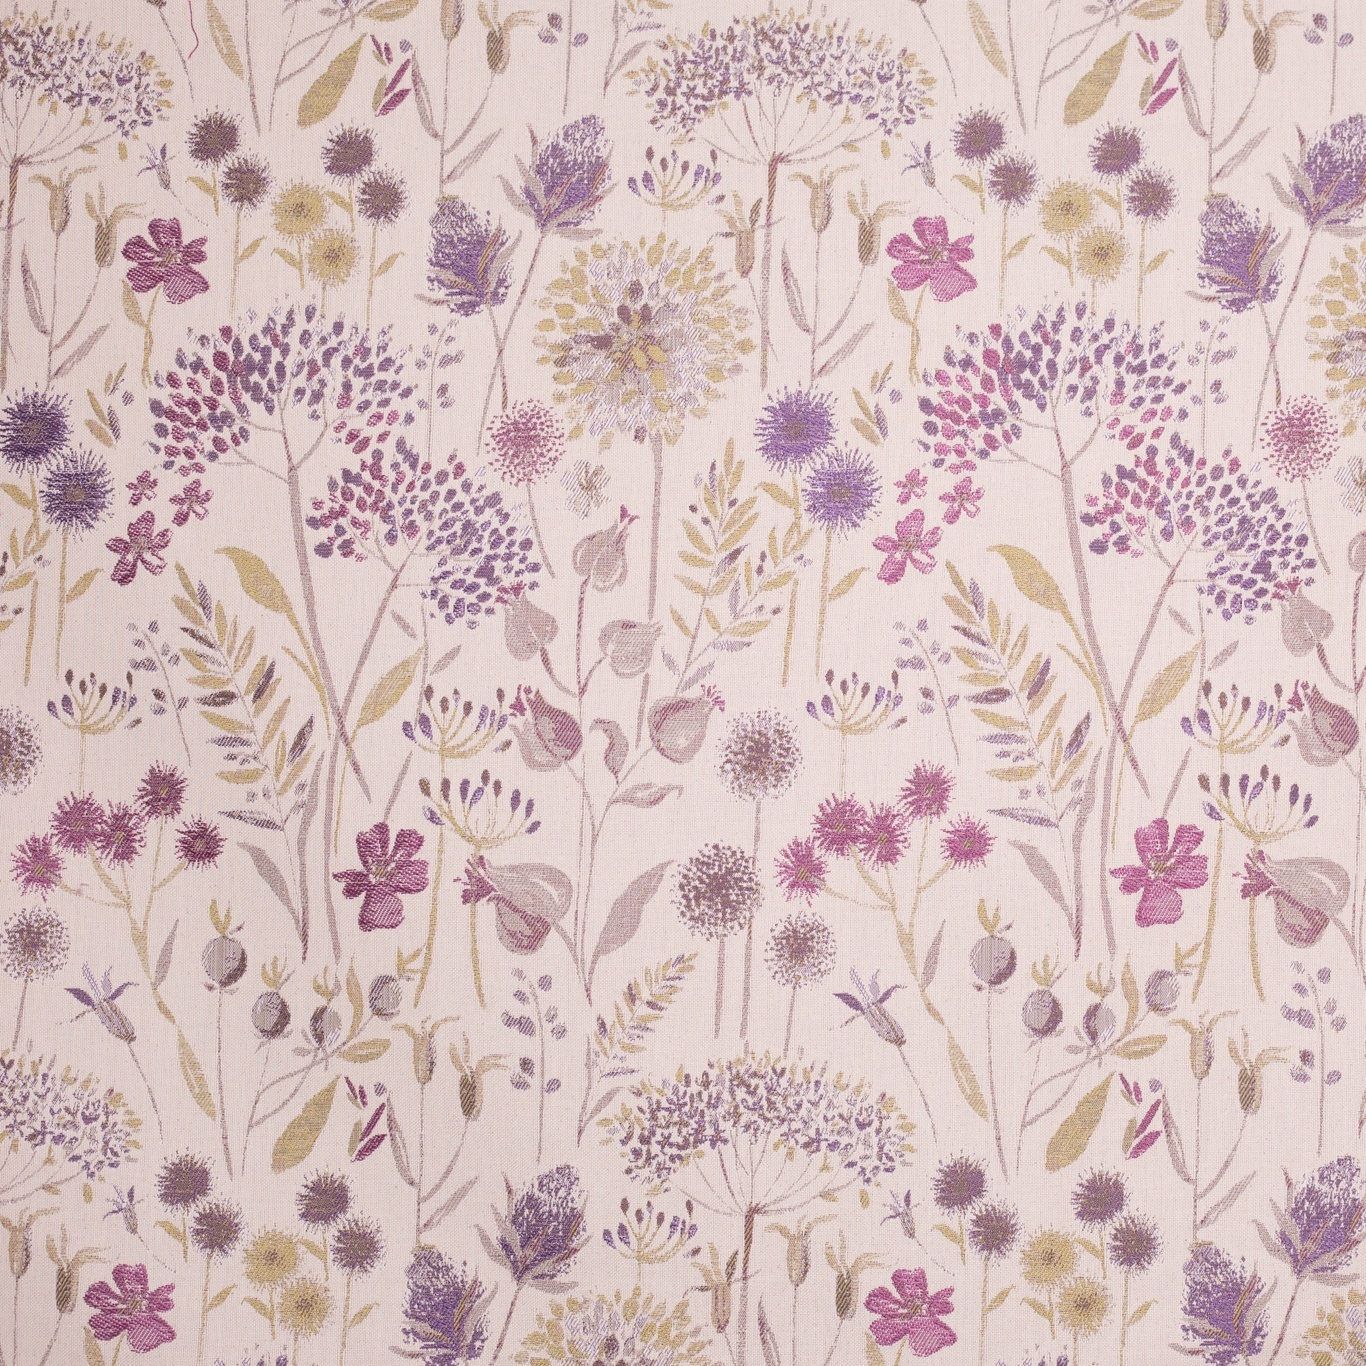 Image of Voyage Flora Cream Heather Fabric 1.7m Remnant